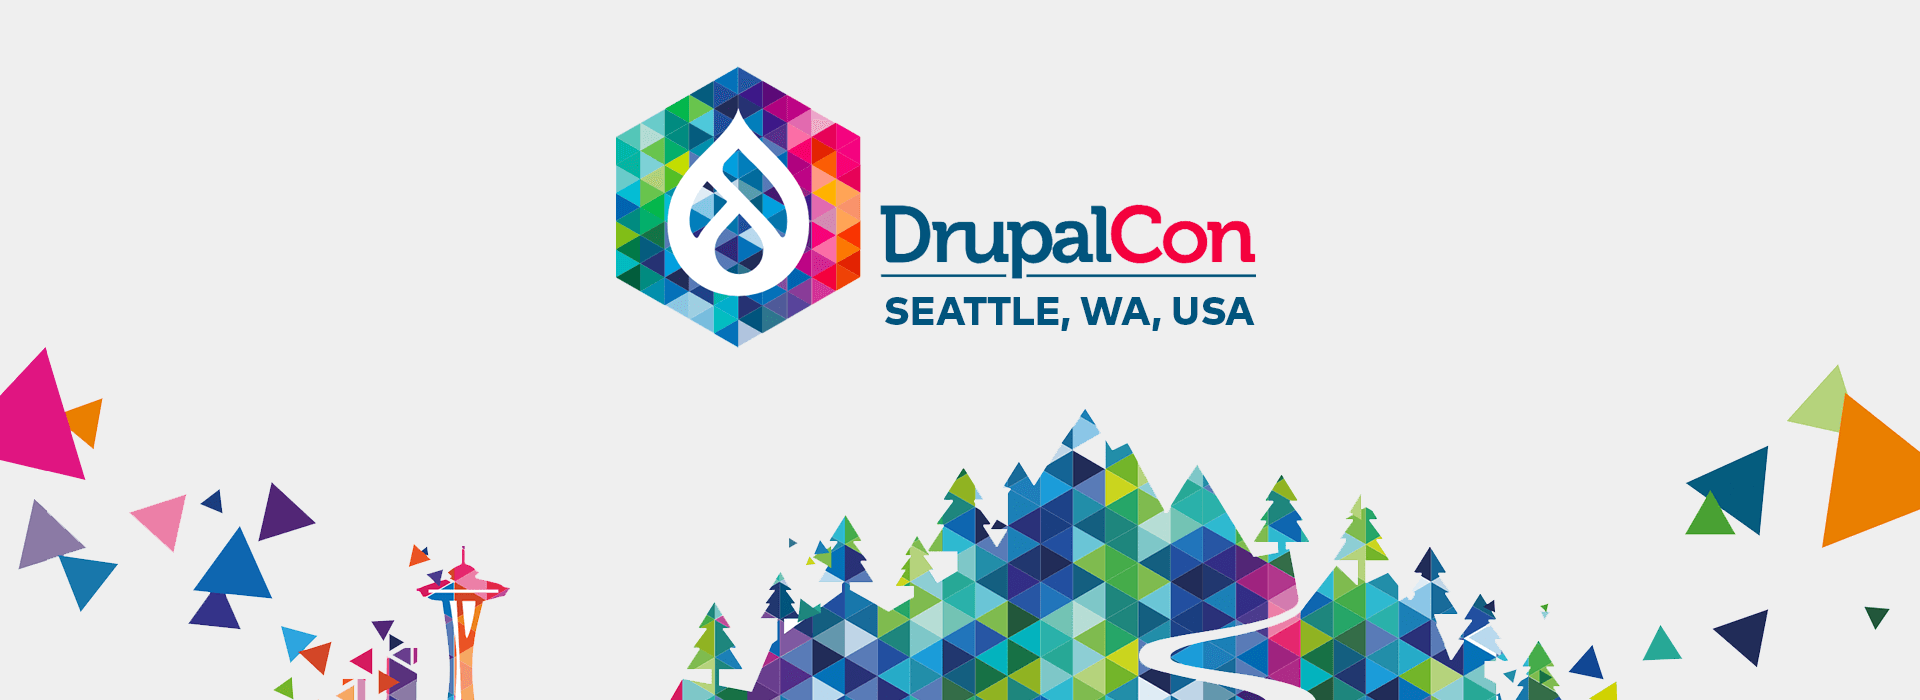 Header image of DrupalCon Seattle